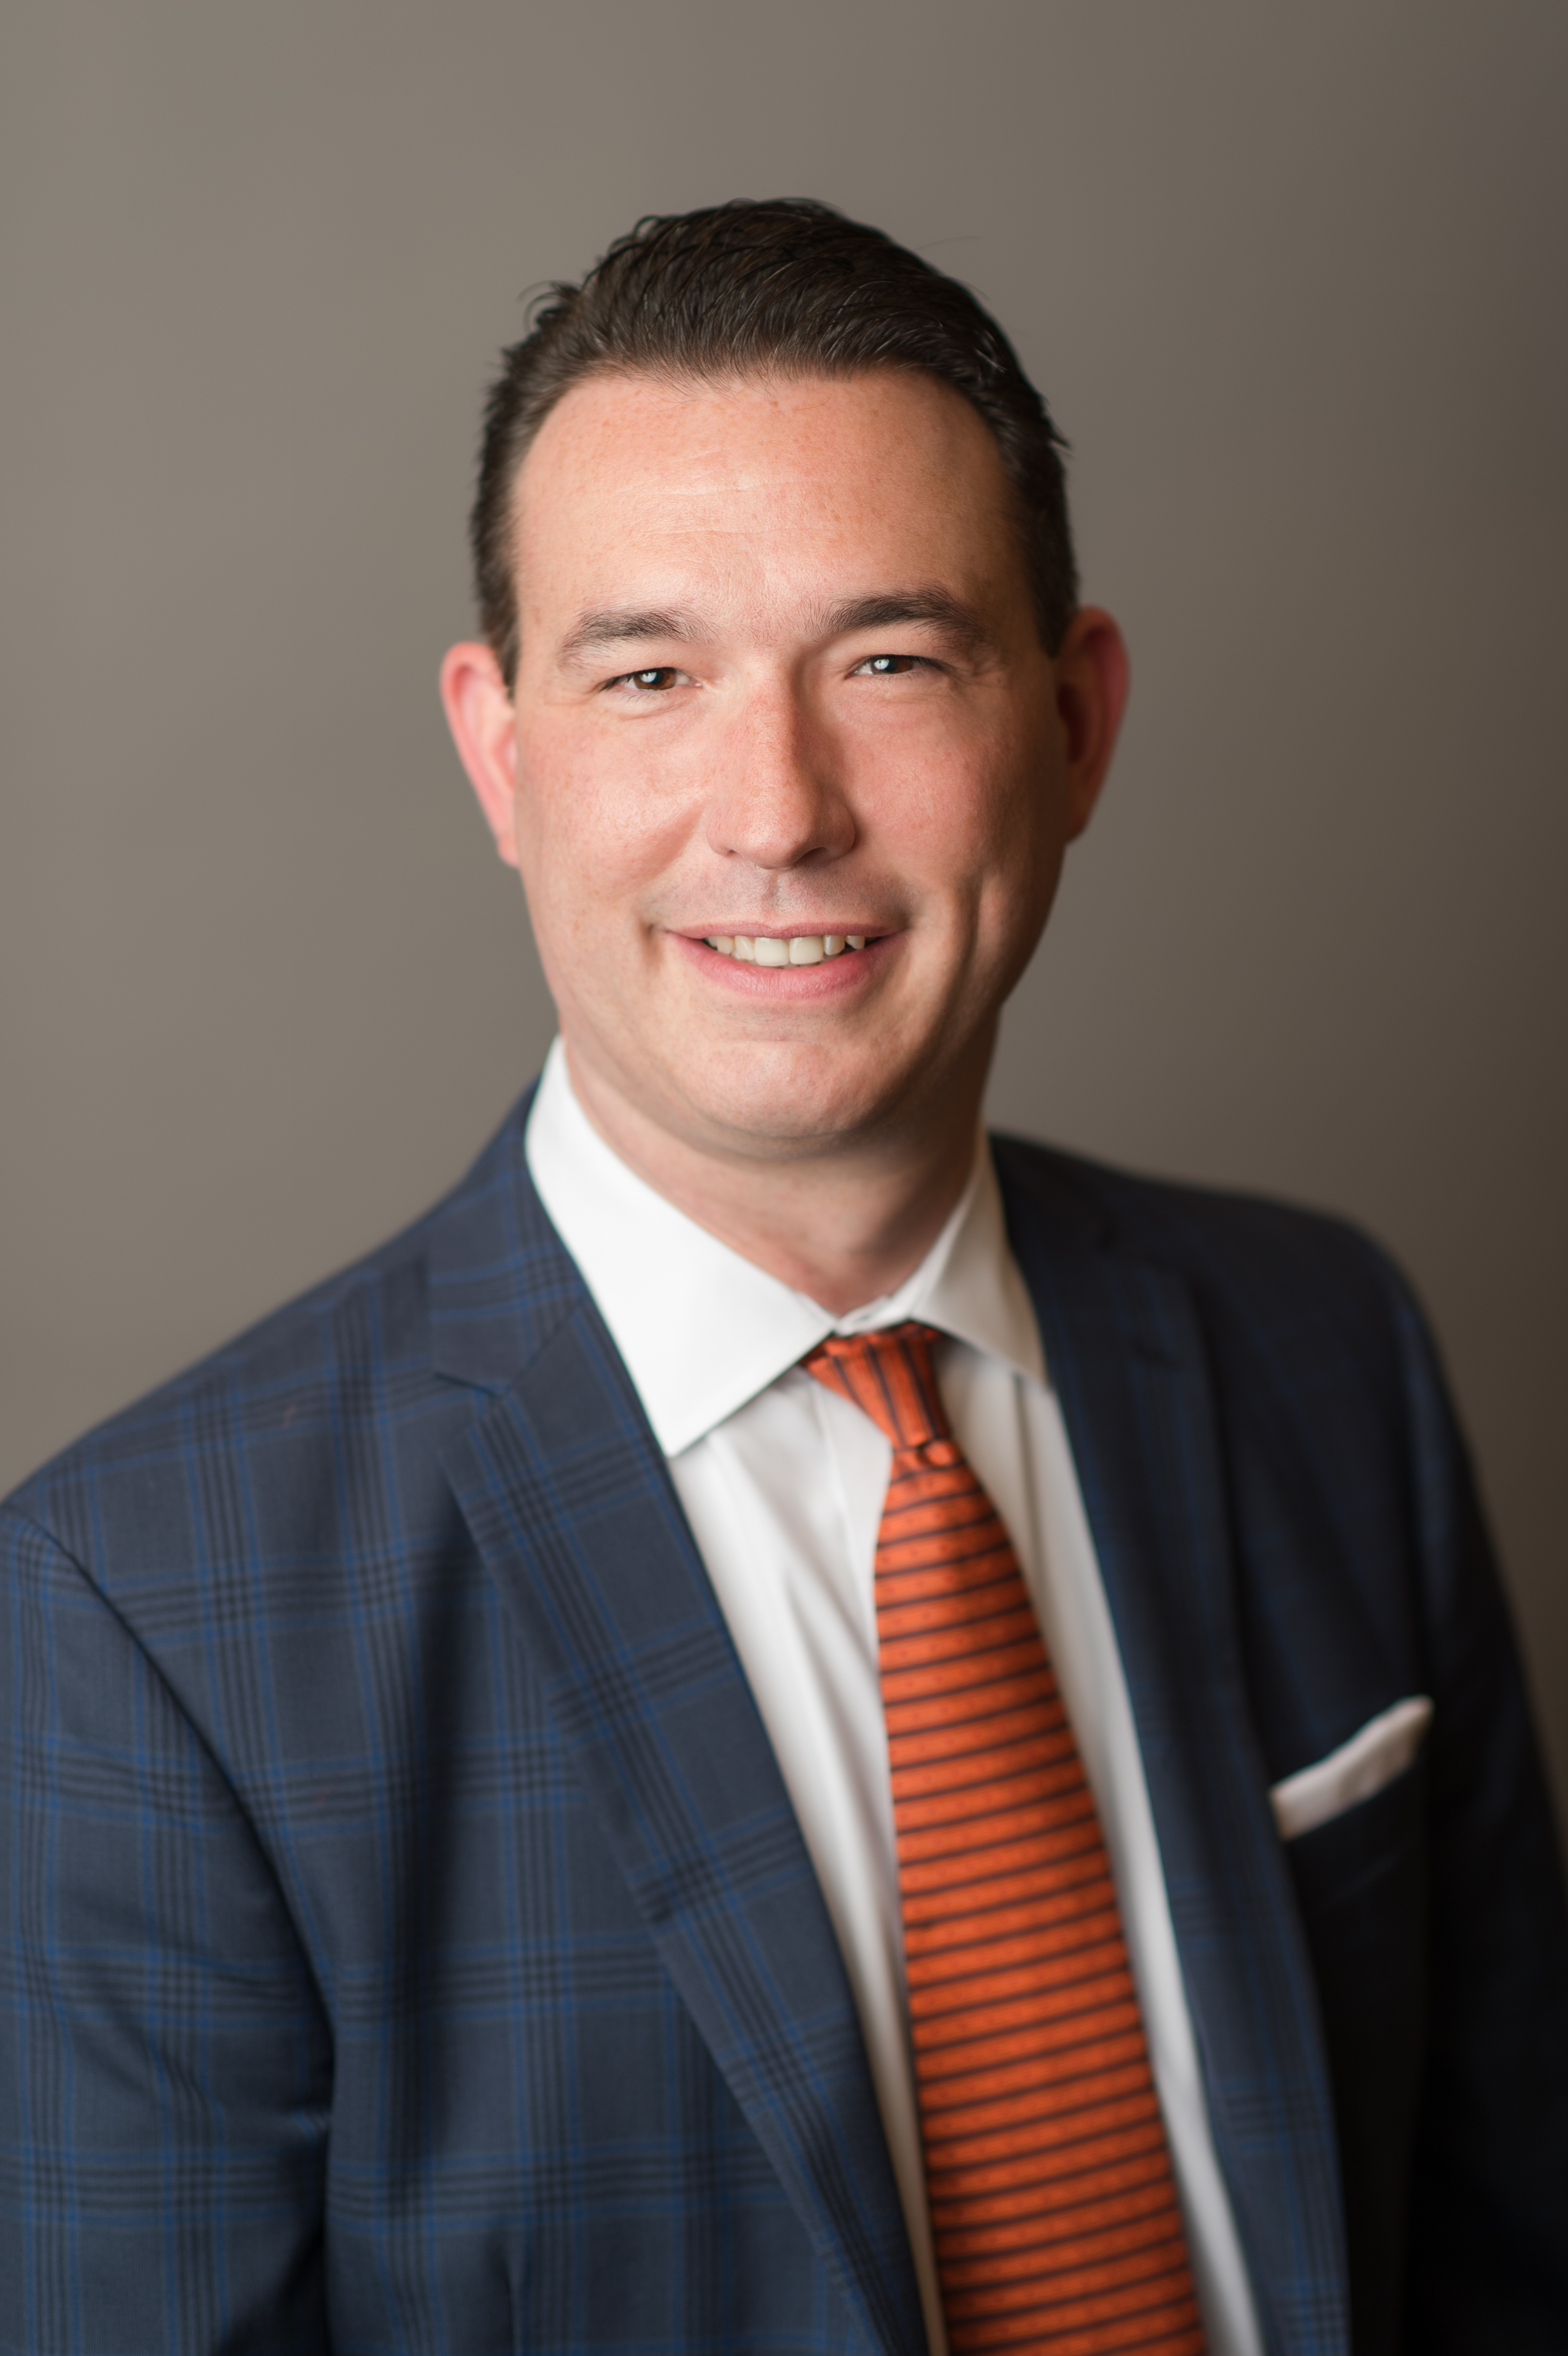 Matthew Lahiff Joins Jqh As Gm Of Embassy Suites By Hilton